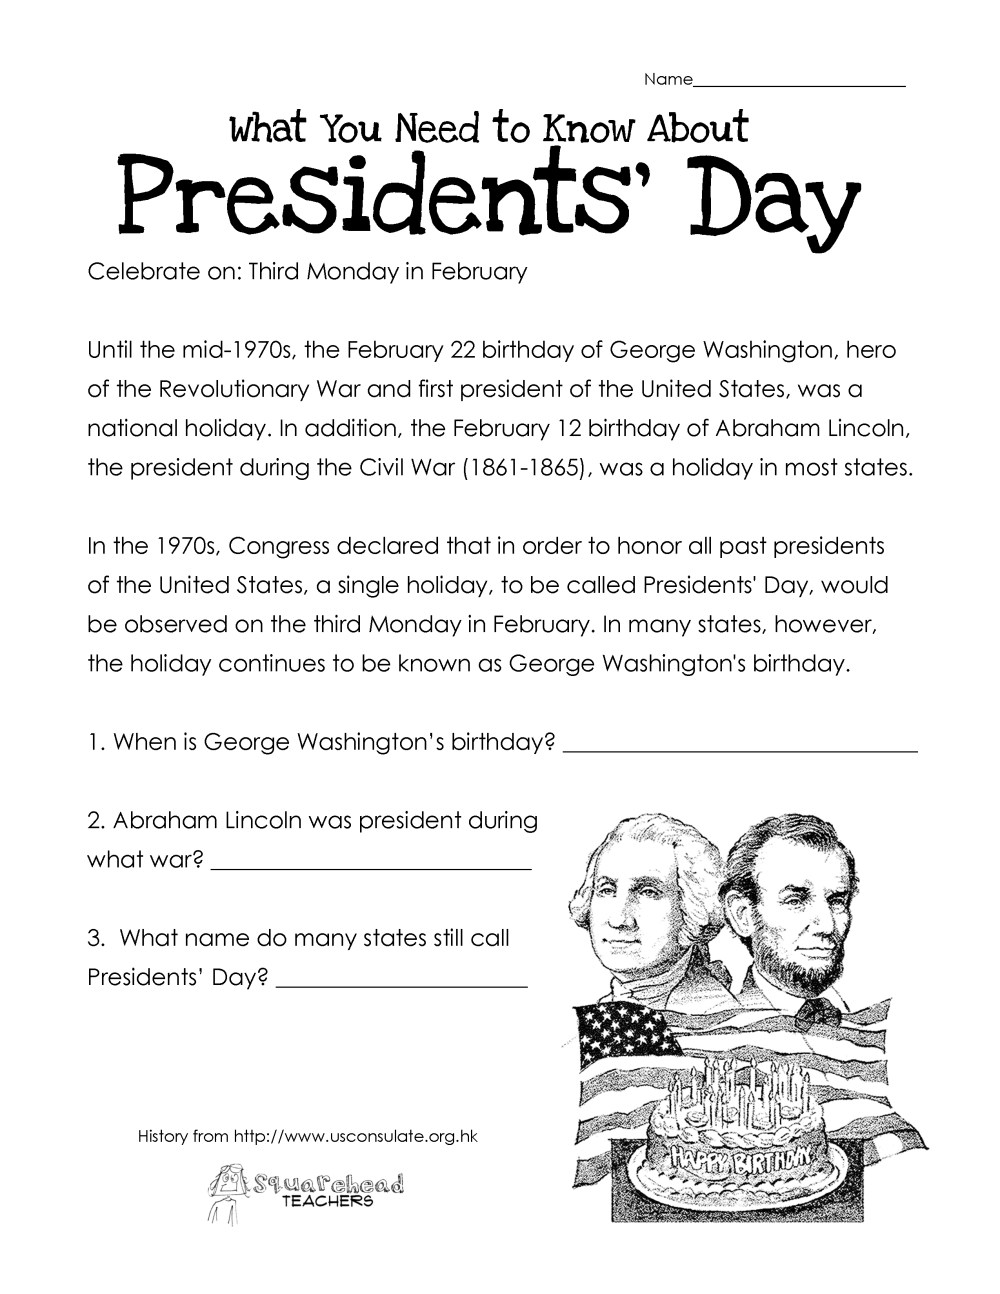 medium resolution of Presidents' Day (free worksheet) UPDATED   Squarehead Teachers